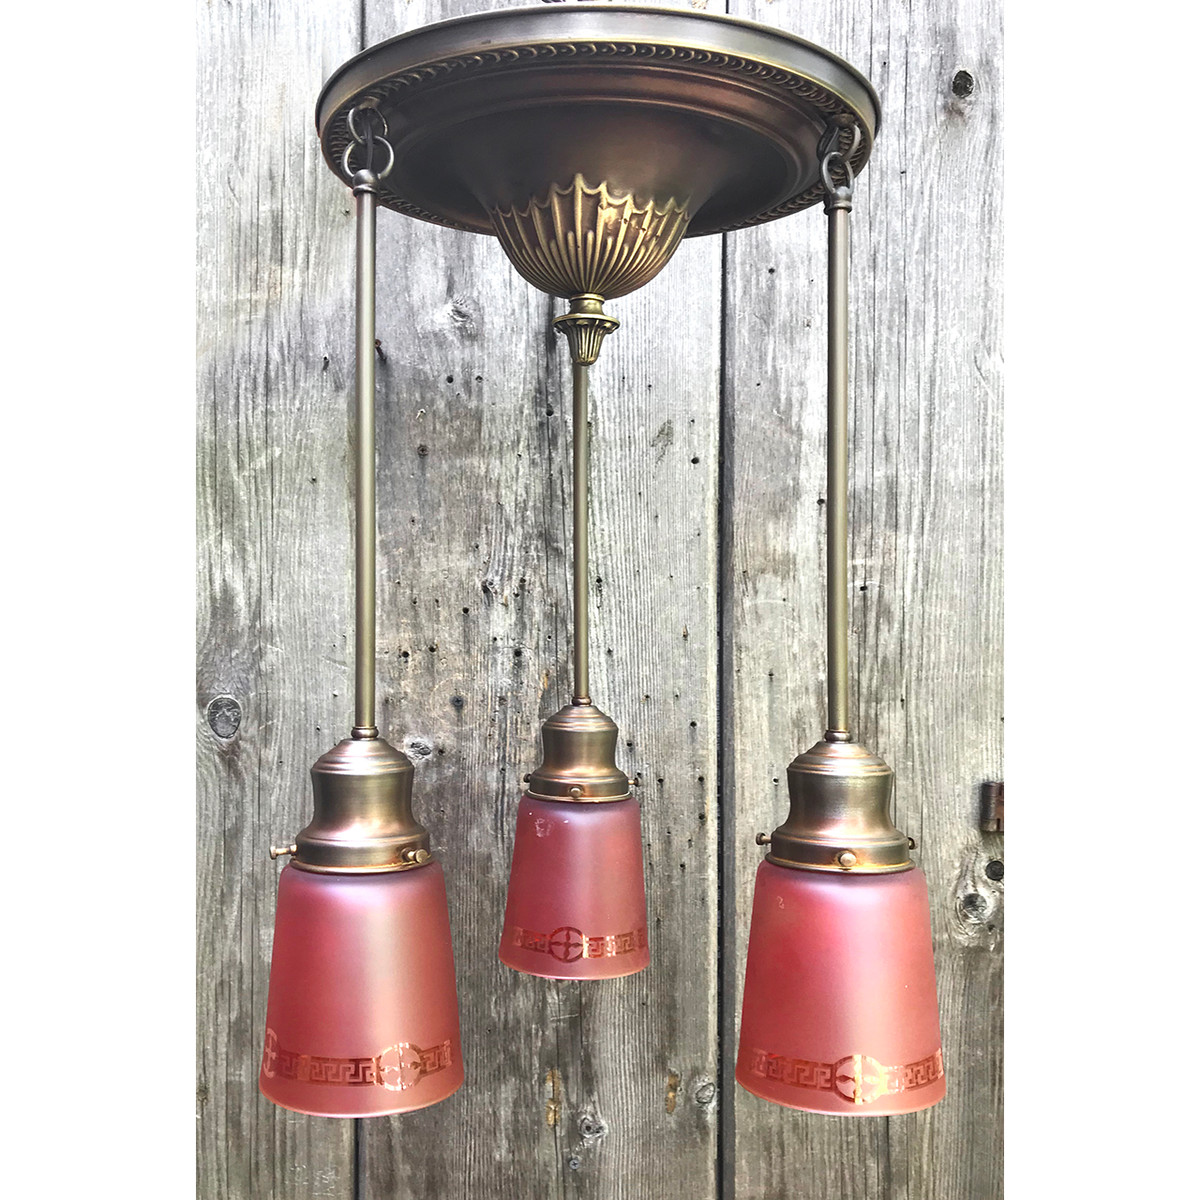 L18085 - Antique Three Light Ceiling Fixture with Carnival Glass